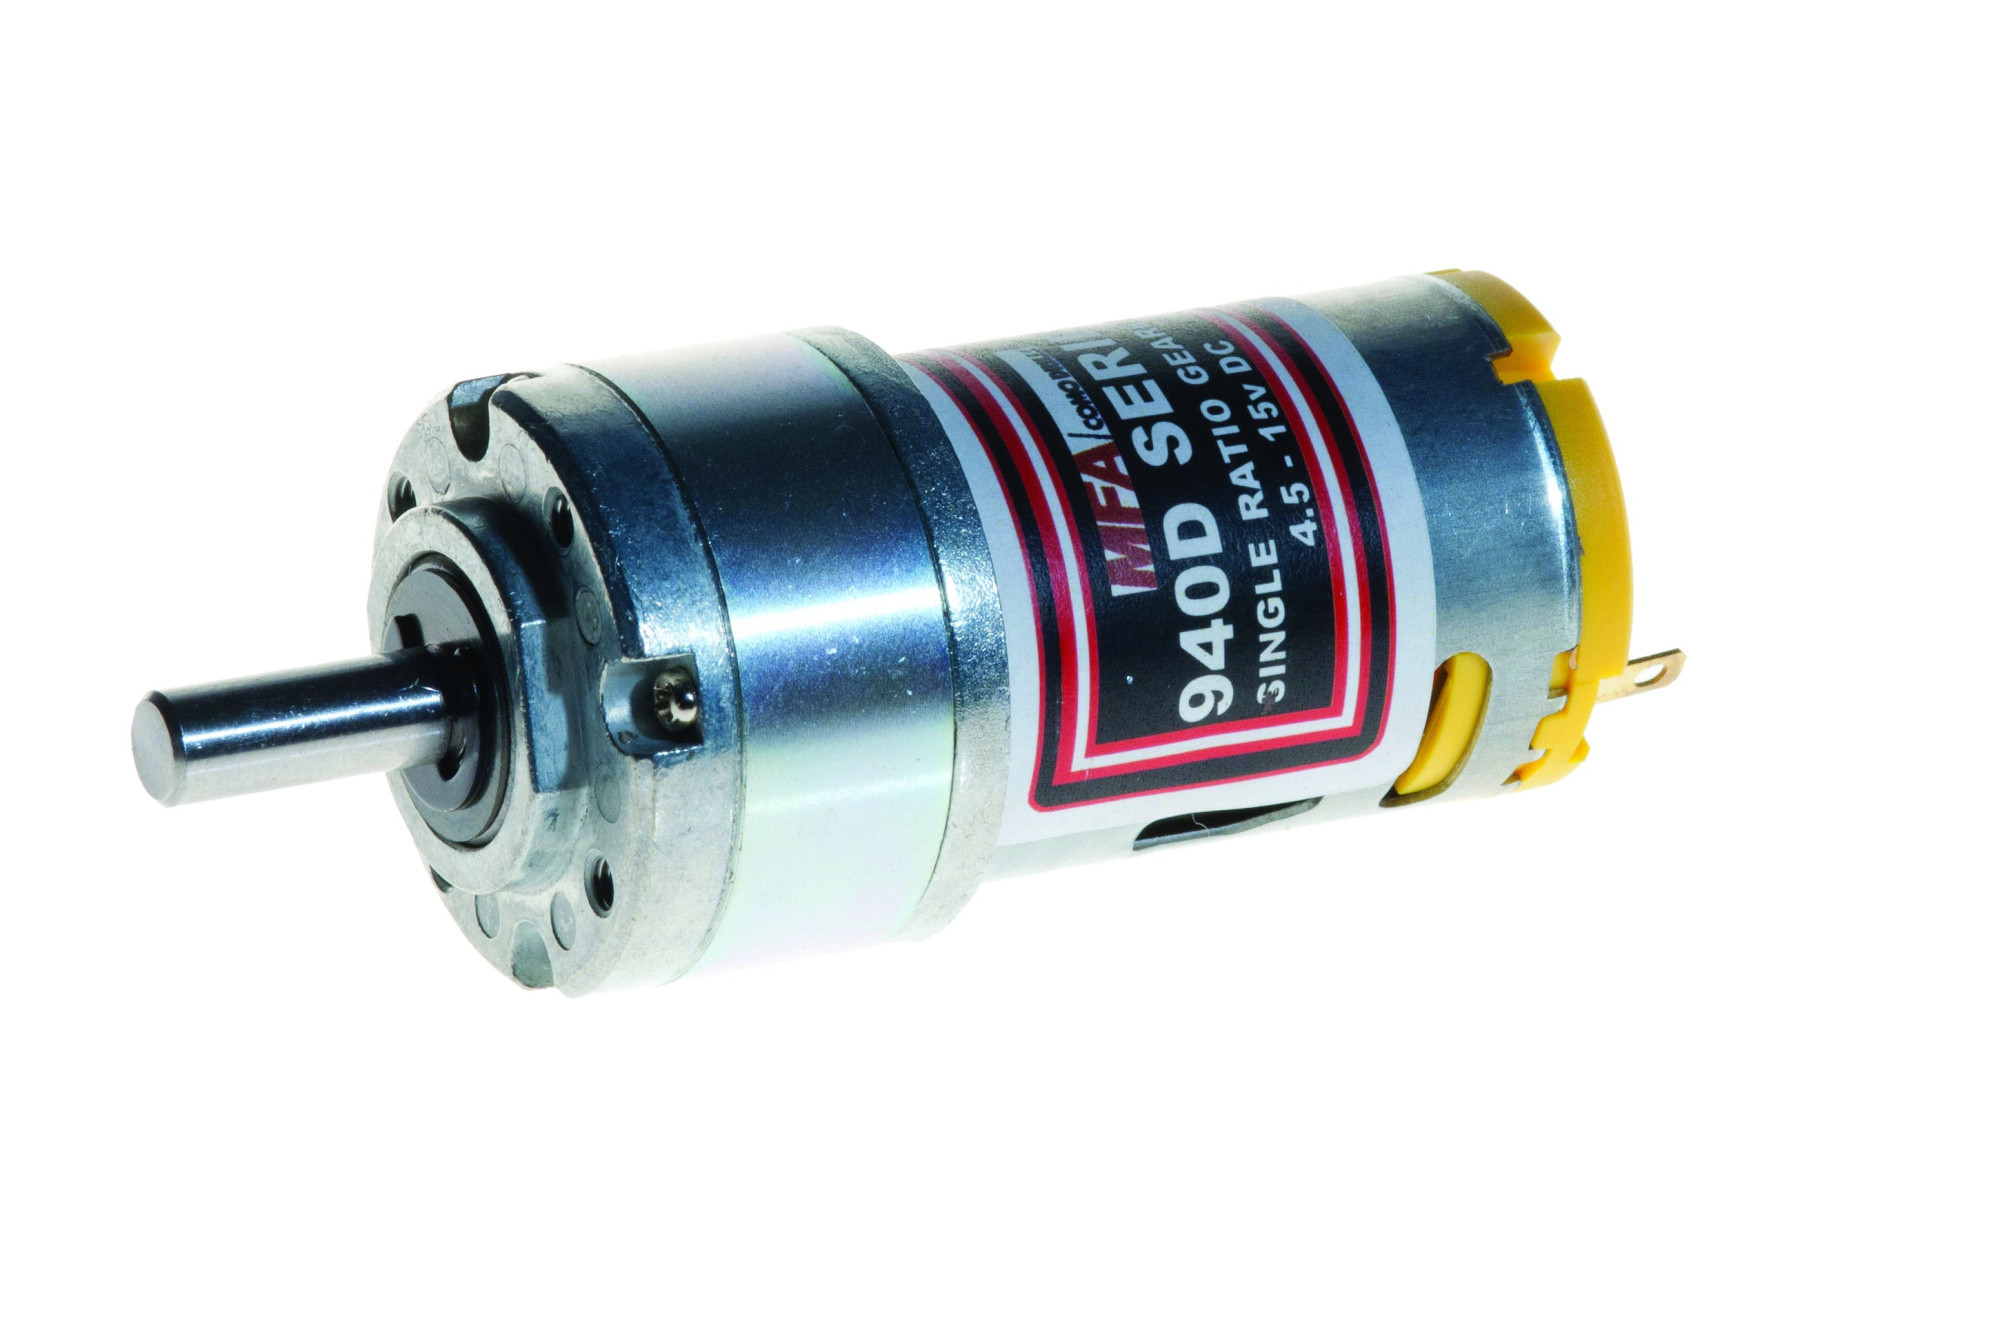 100 1 mfa heavy duty epicyclic planetary motor gearbox Electric motor with gearbox